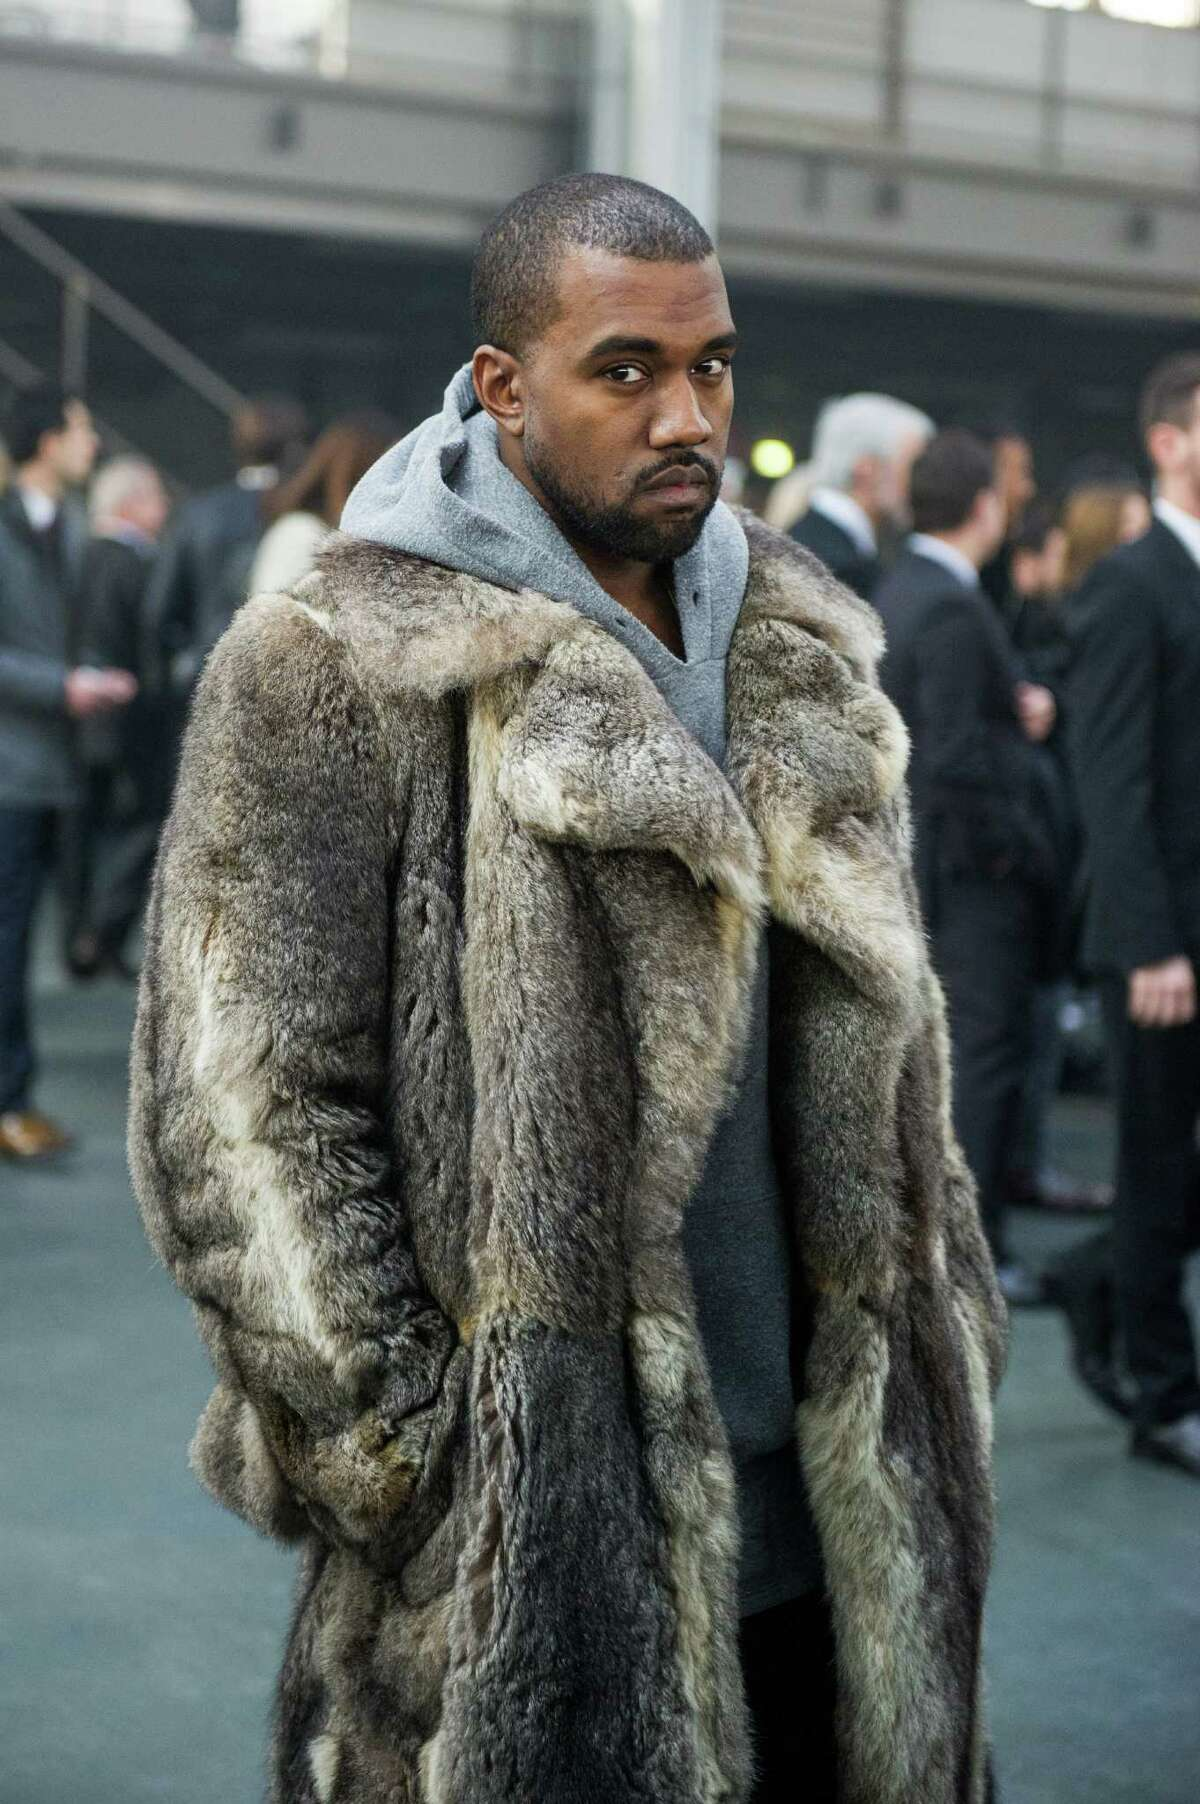 FILE - This Jan. 17, 2014 file photo shows singer Kanye West as he arrives for the Givenchy men's Fall-Winter 2014-2015 fashion collection in Paris. West will not face criminal charges over an incident in which he apparently punched a man in a Beverly Hills chiropractor's office, prosecutors determined Friday, Jan. 31. The Los Angeles County District Attorney's Office rejected a battery case against the rapper because he had reached a civil settlement with the man and there were no significant injuries documented after the altercation. The altercation occurred after the 18-year-old man used a racial slur in an argument with West's fiancee, Kim Kardashian, on Jan. 13, according to a document prepared by a prosecutor. (AP Photo/Zacharie Scheurer, File) ORG XMIT: NYET632